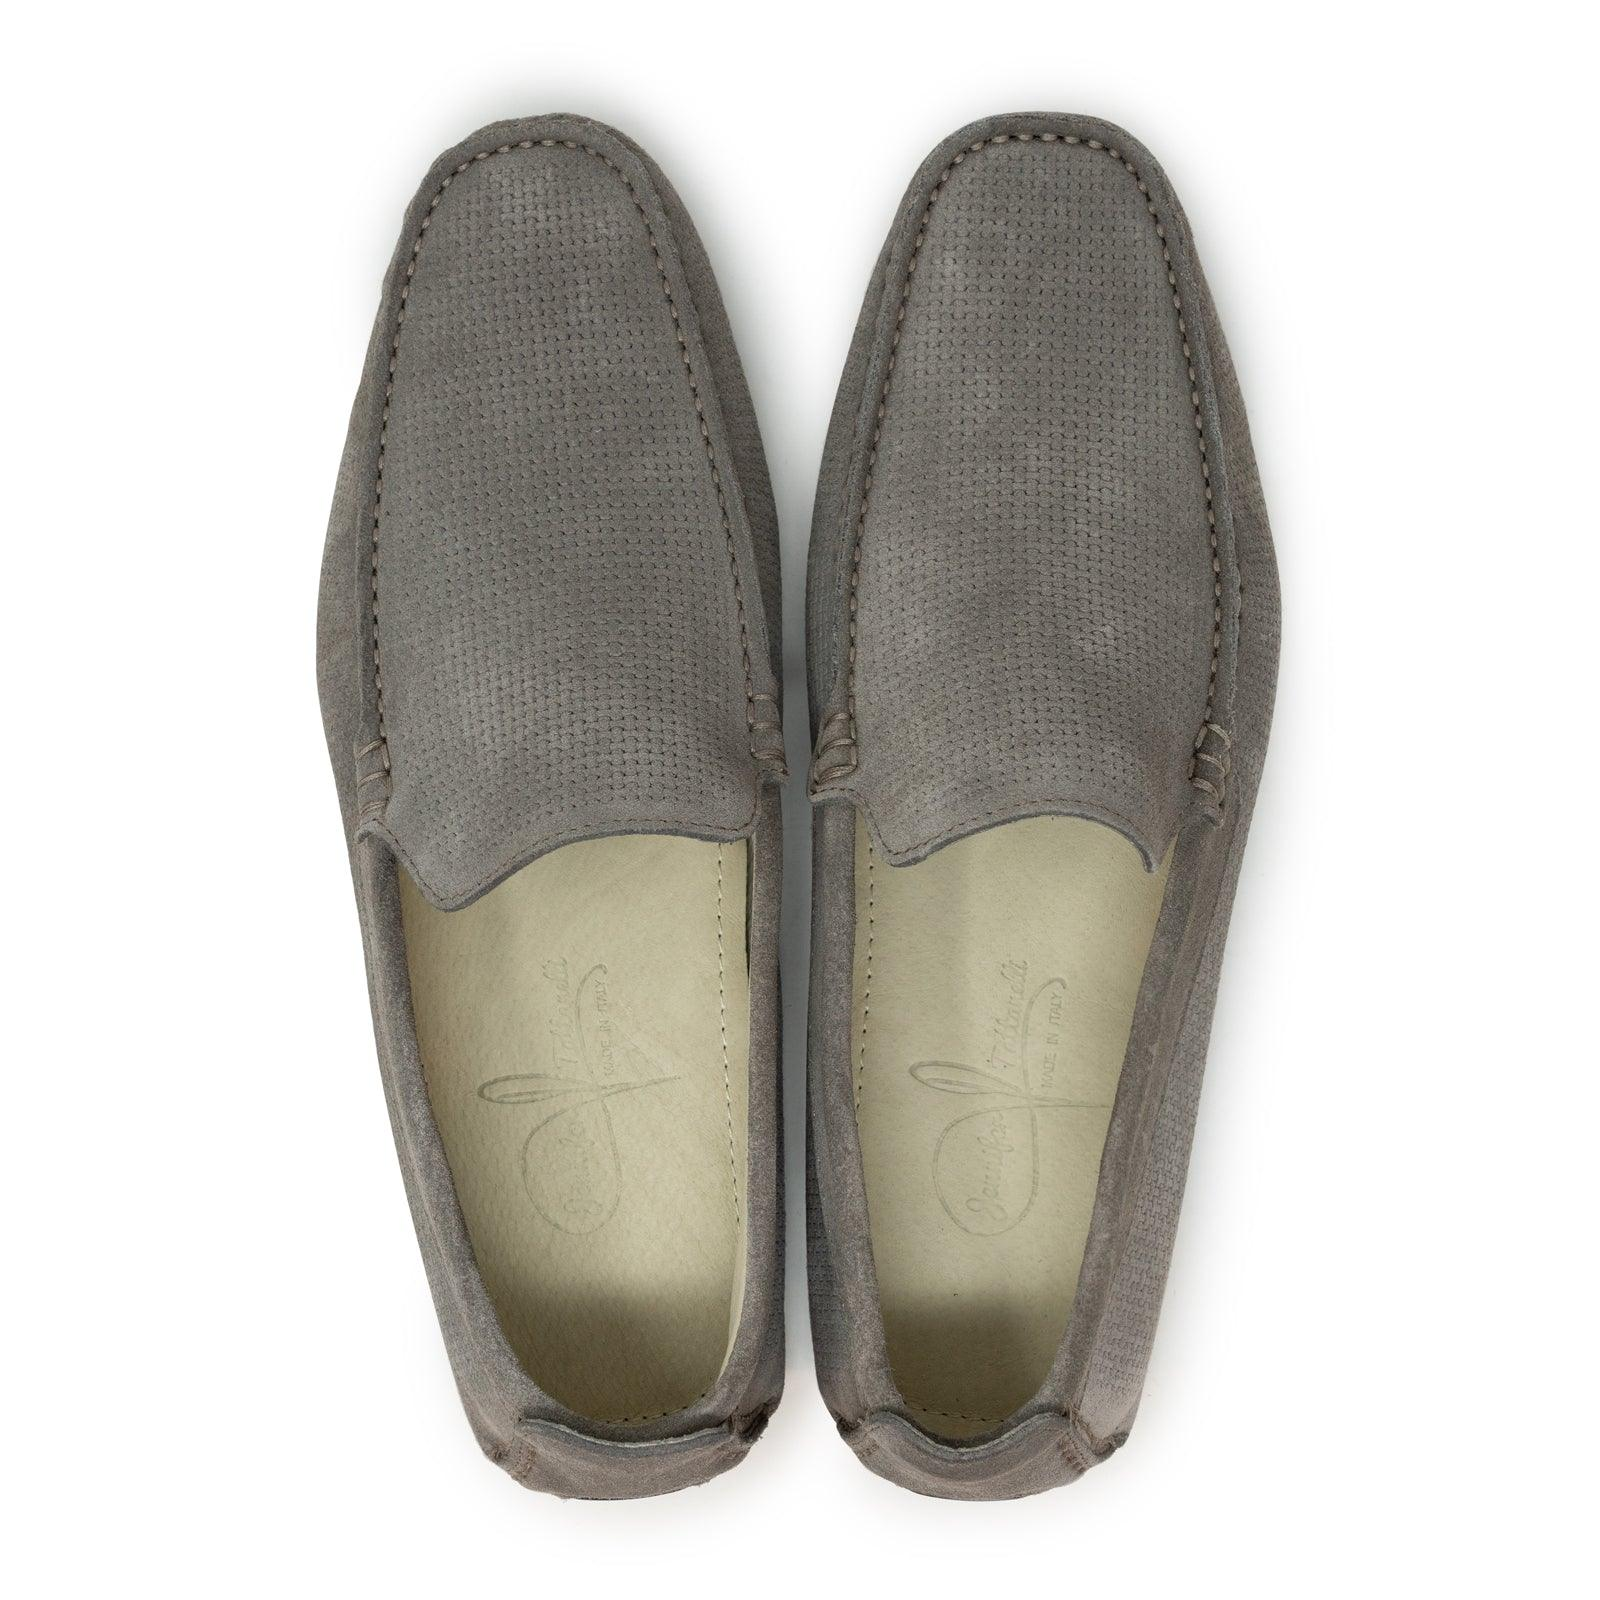 Men's Driving Shoes in Velour Softy Taupe Leather